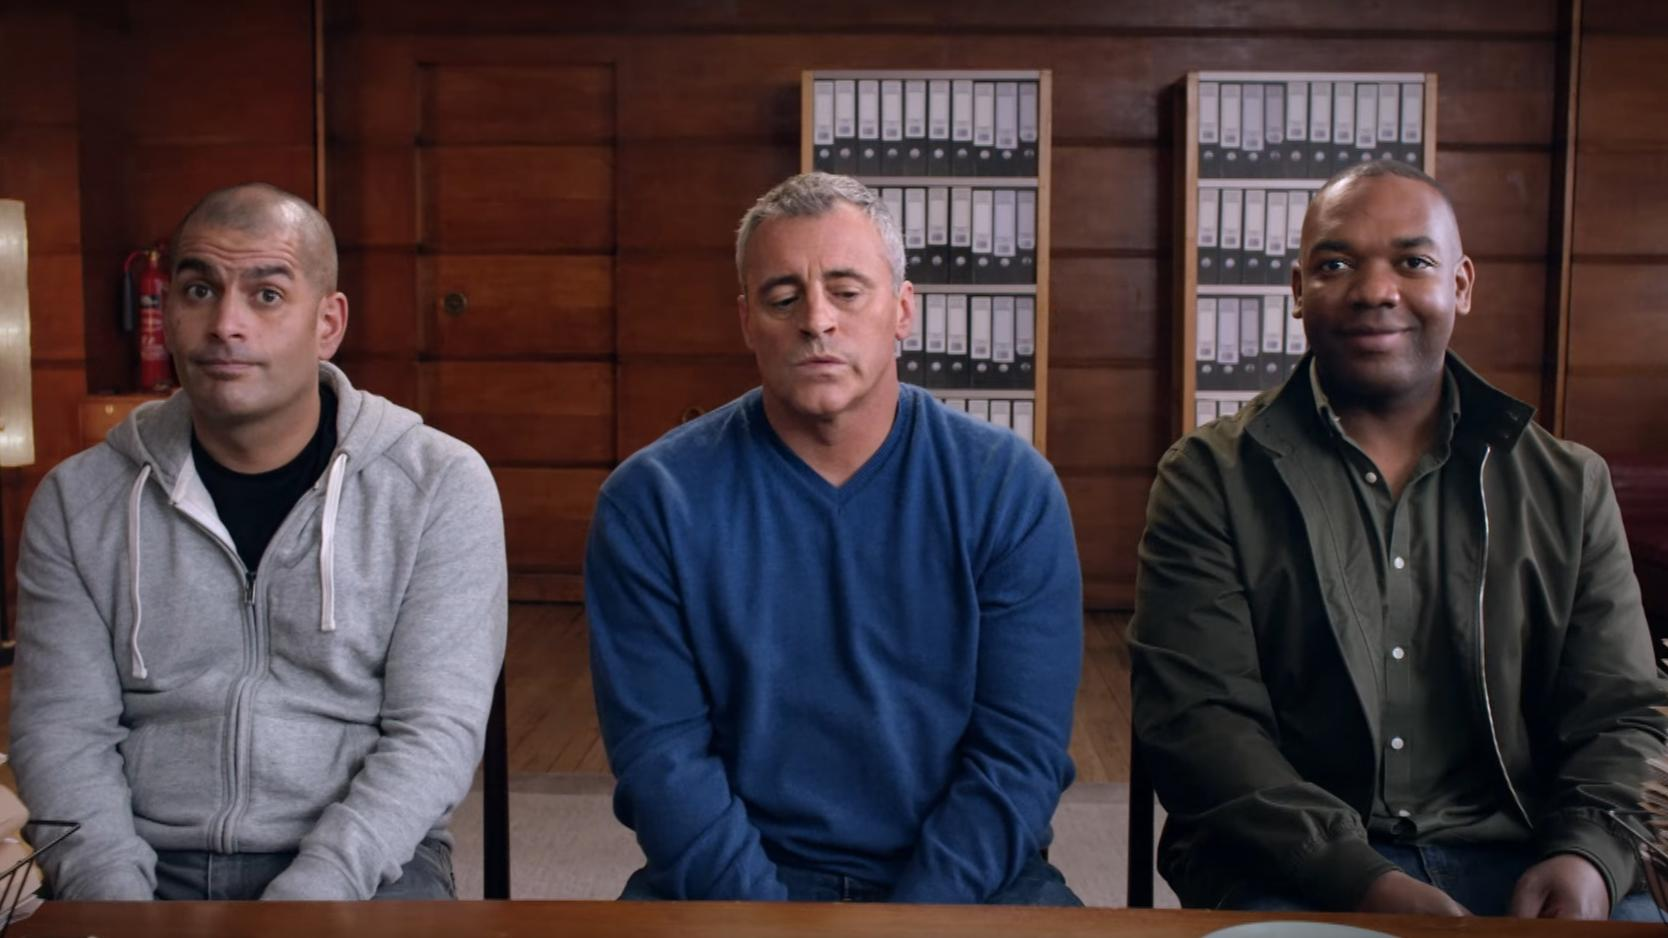 top gear trailer first look at matt leblanc rory reid and chris harris as new hosts the. Black Bedroom Furniture Sets. Home Design Ideas